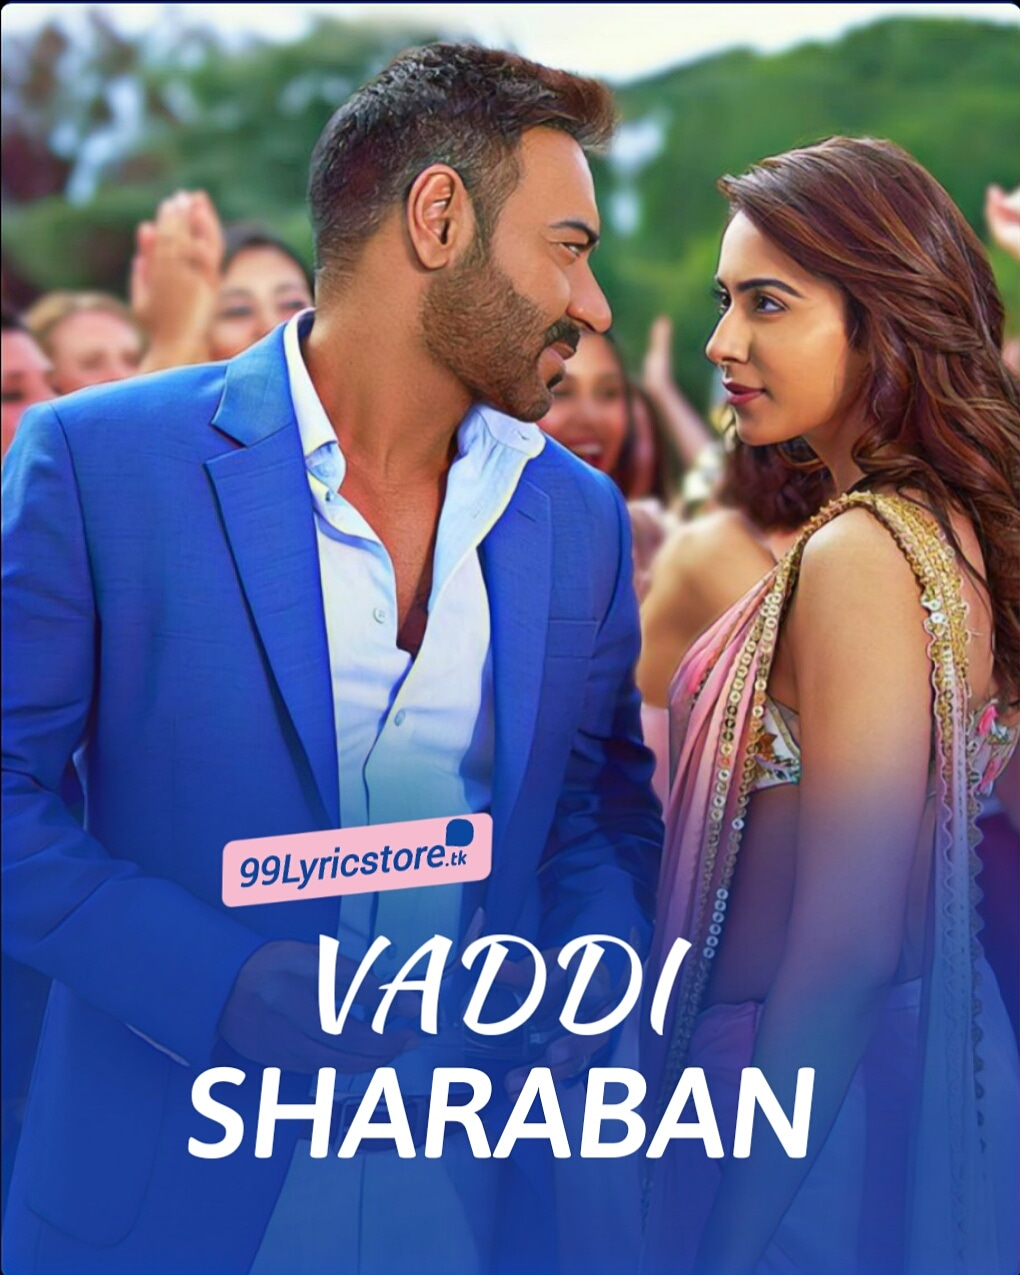 Vaddi Sharaban Lyrics Sung Sunidhi Chauhan and Navraj Hans from movie 'De De Pyaar De'